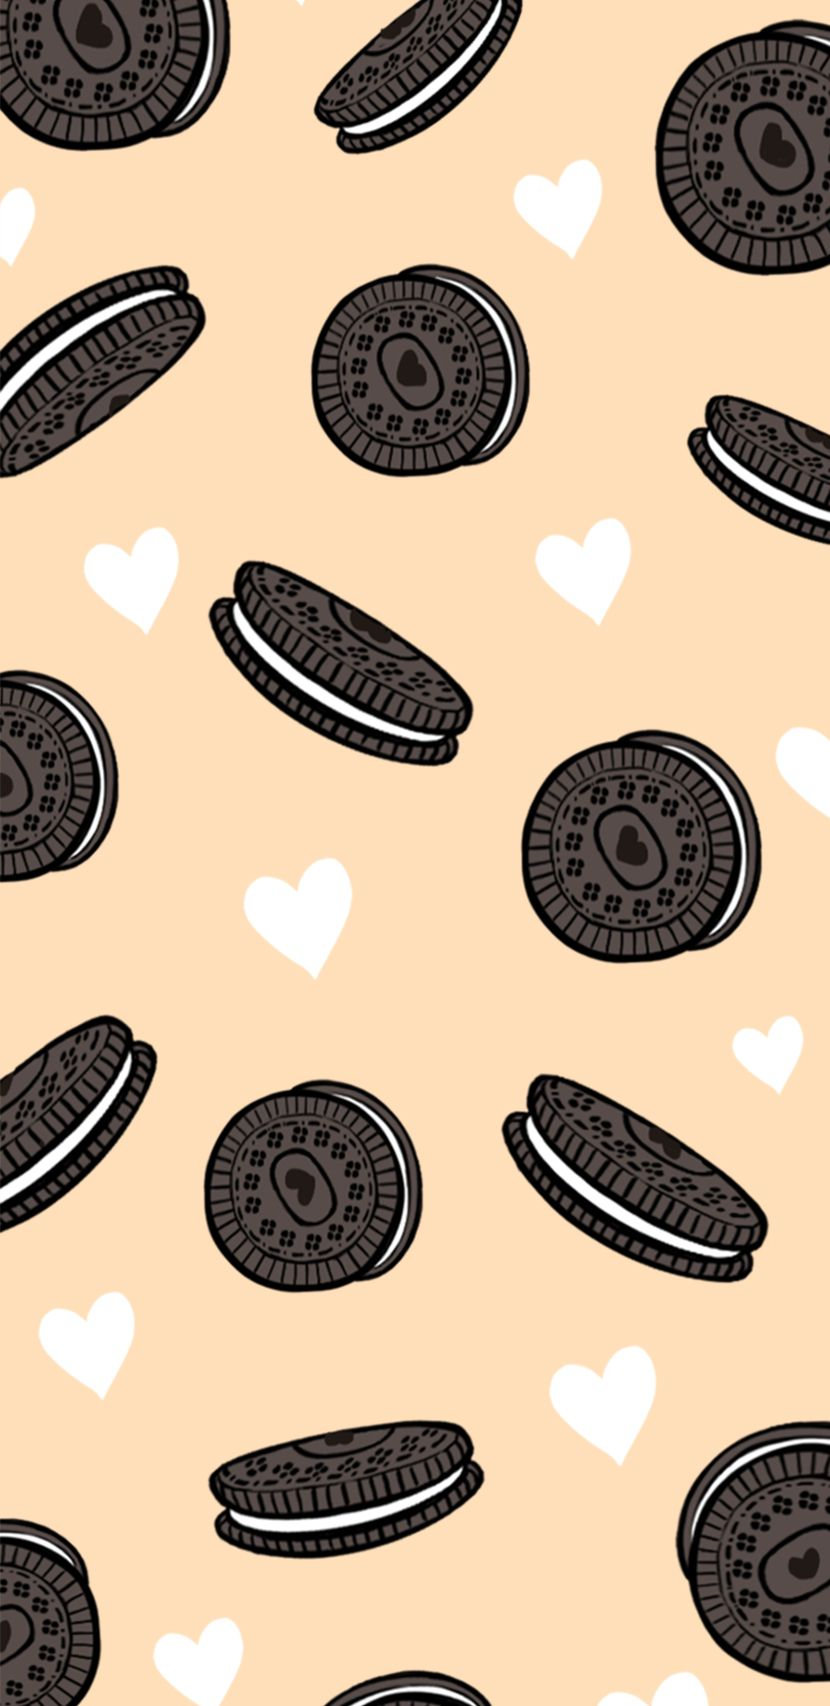 A Cookie A Day Keeps The Doctor Away Wallpaper Iphone Cute Pastel Color Wallpaper Screen Savers